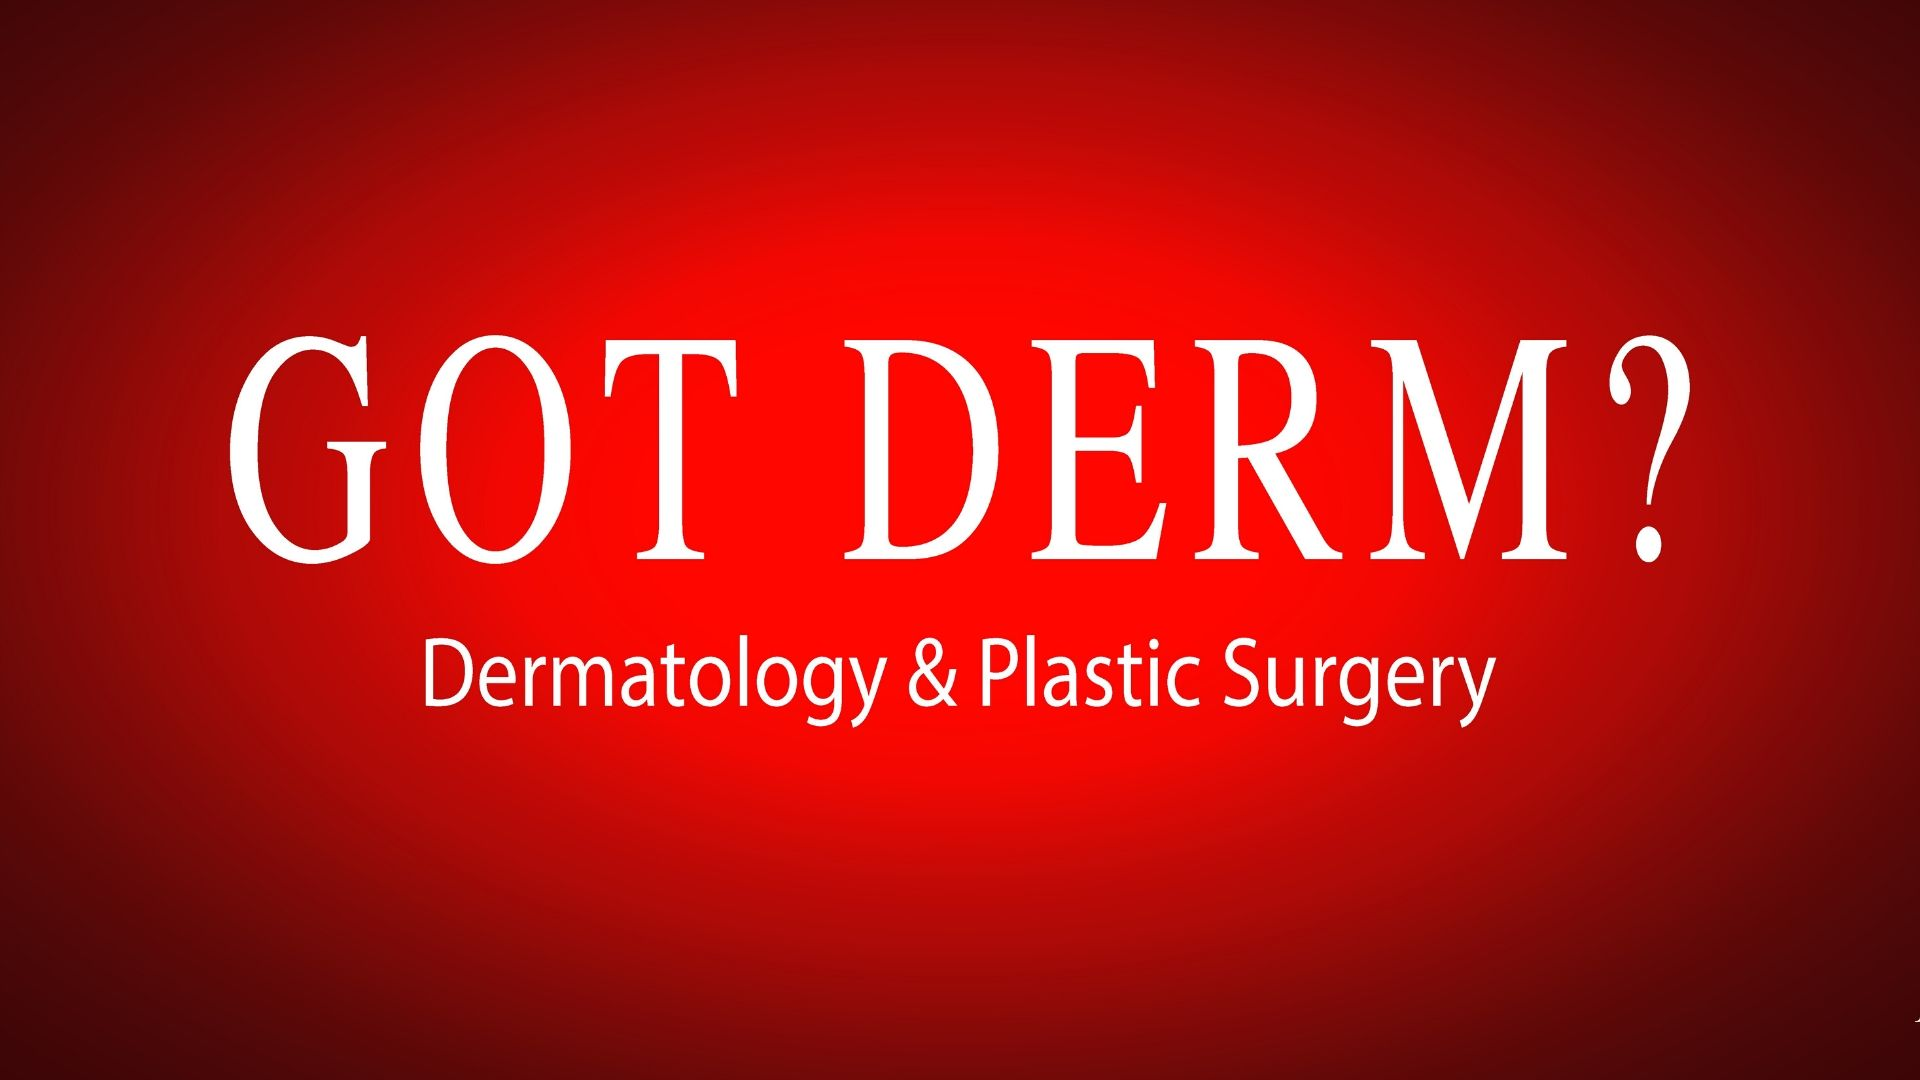 GOT DERM? Dermatology & Plastic Surgery